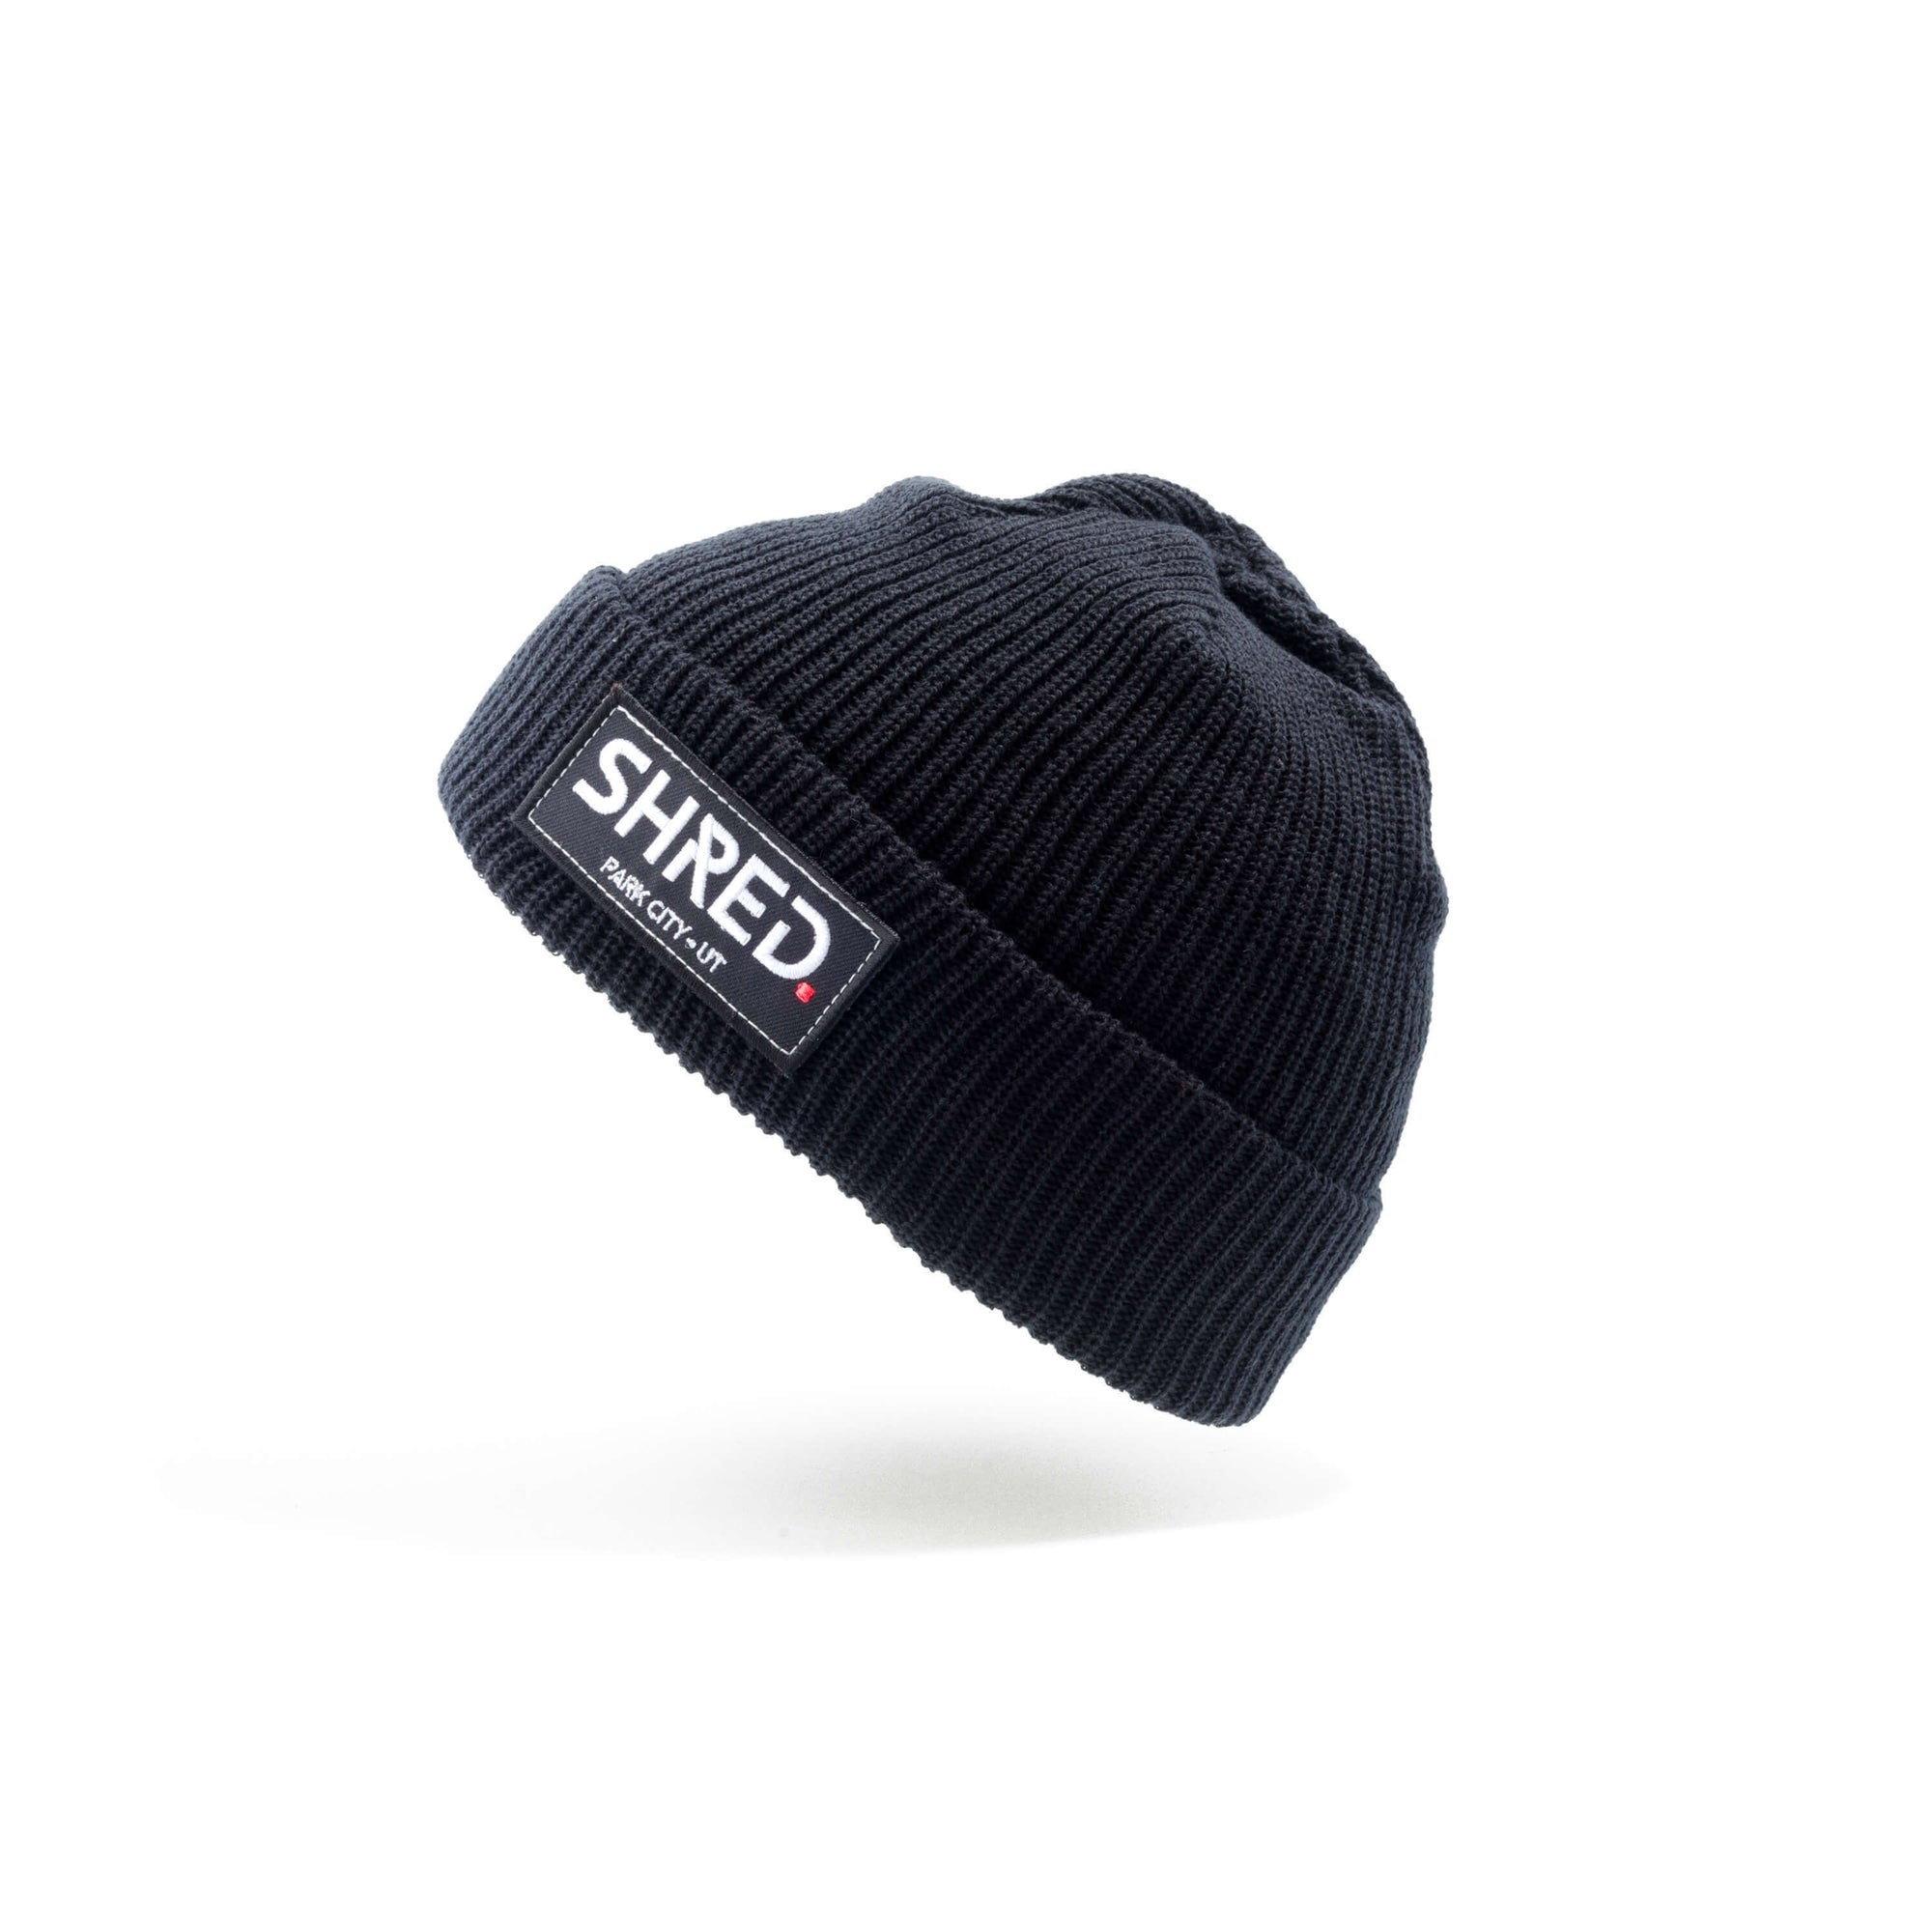 Lowell Beanie Black - Hats